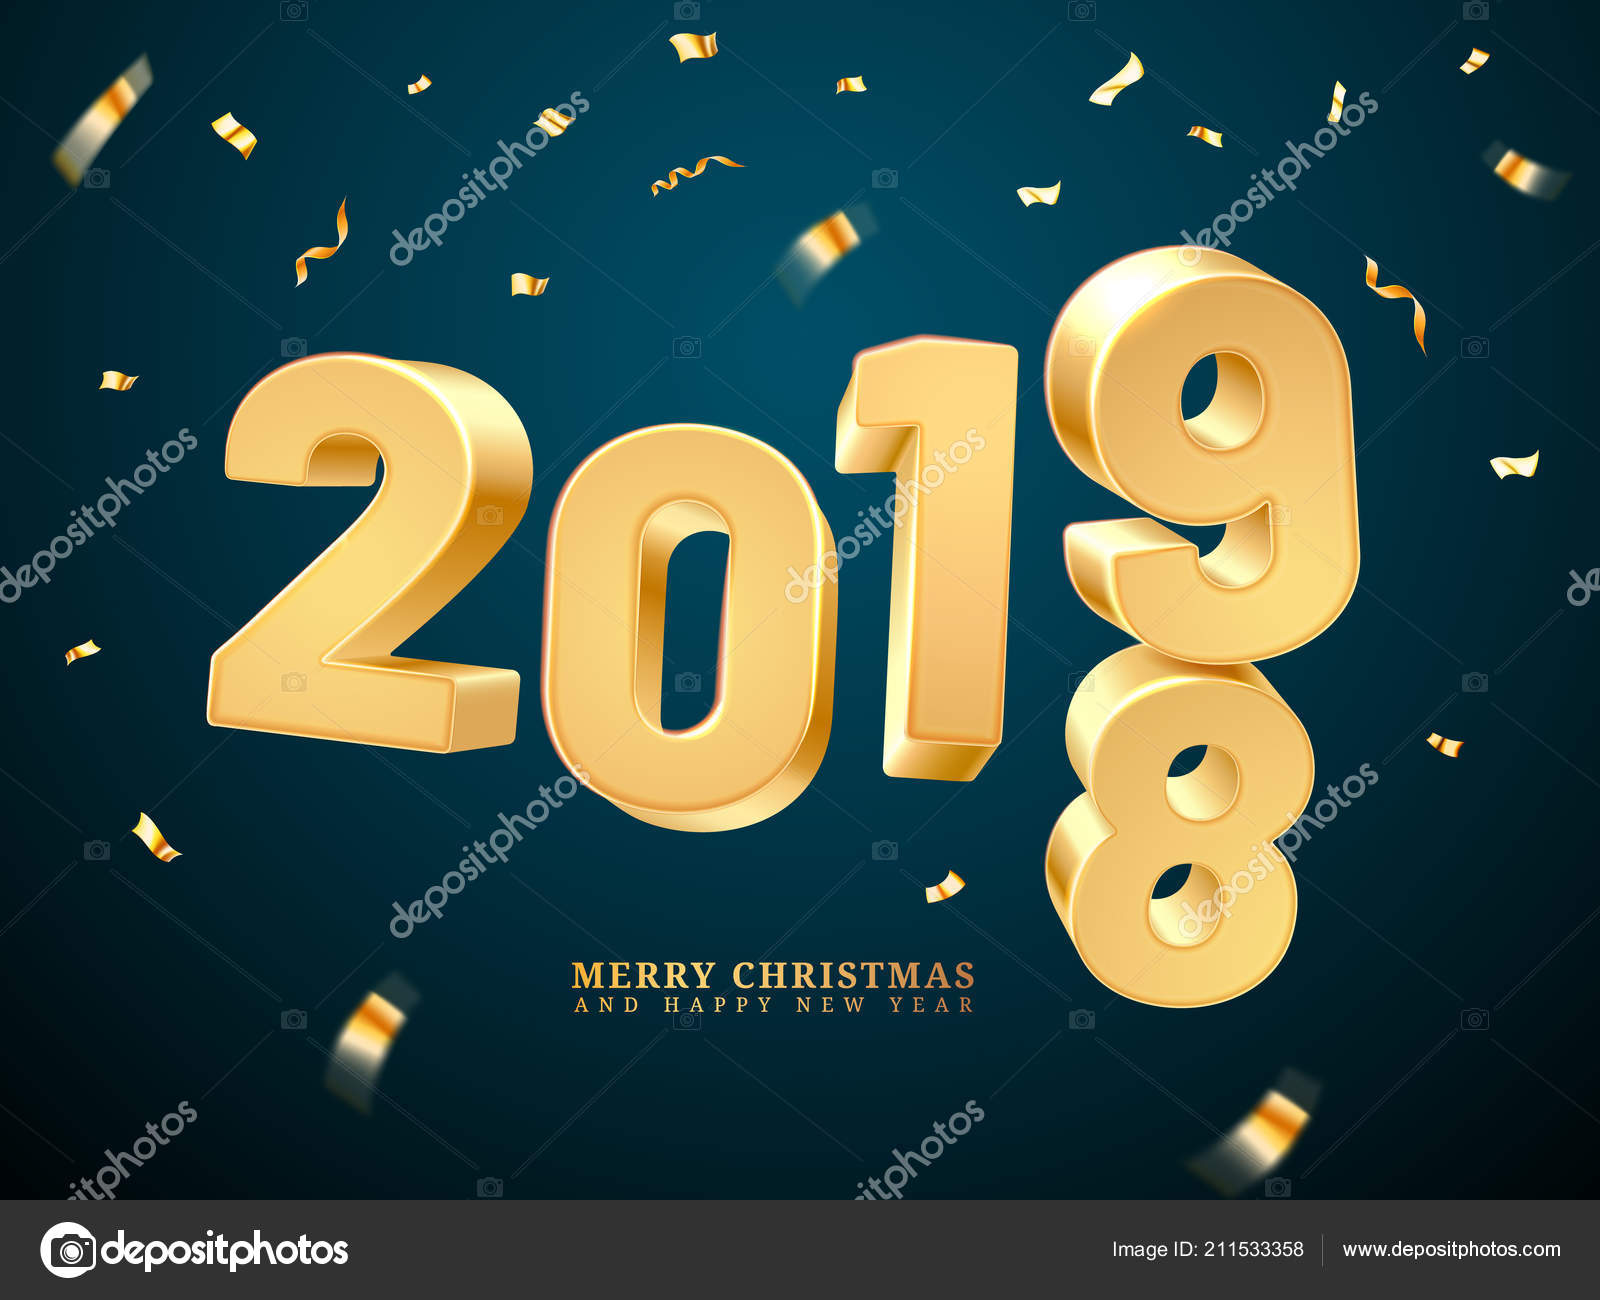 2018 2019 change represents the new year and merry christmas happy holiday and x mas eve celebration greeting postcard or december poster